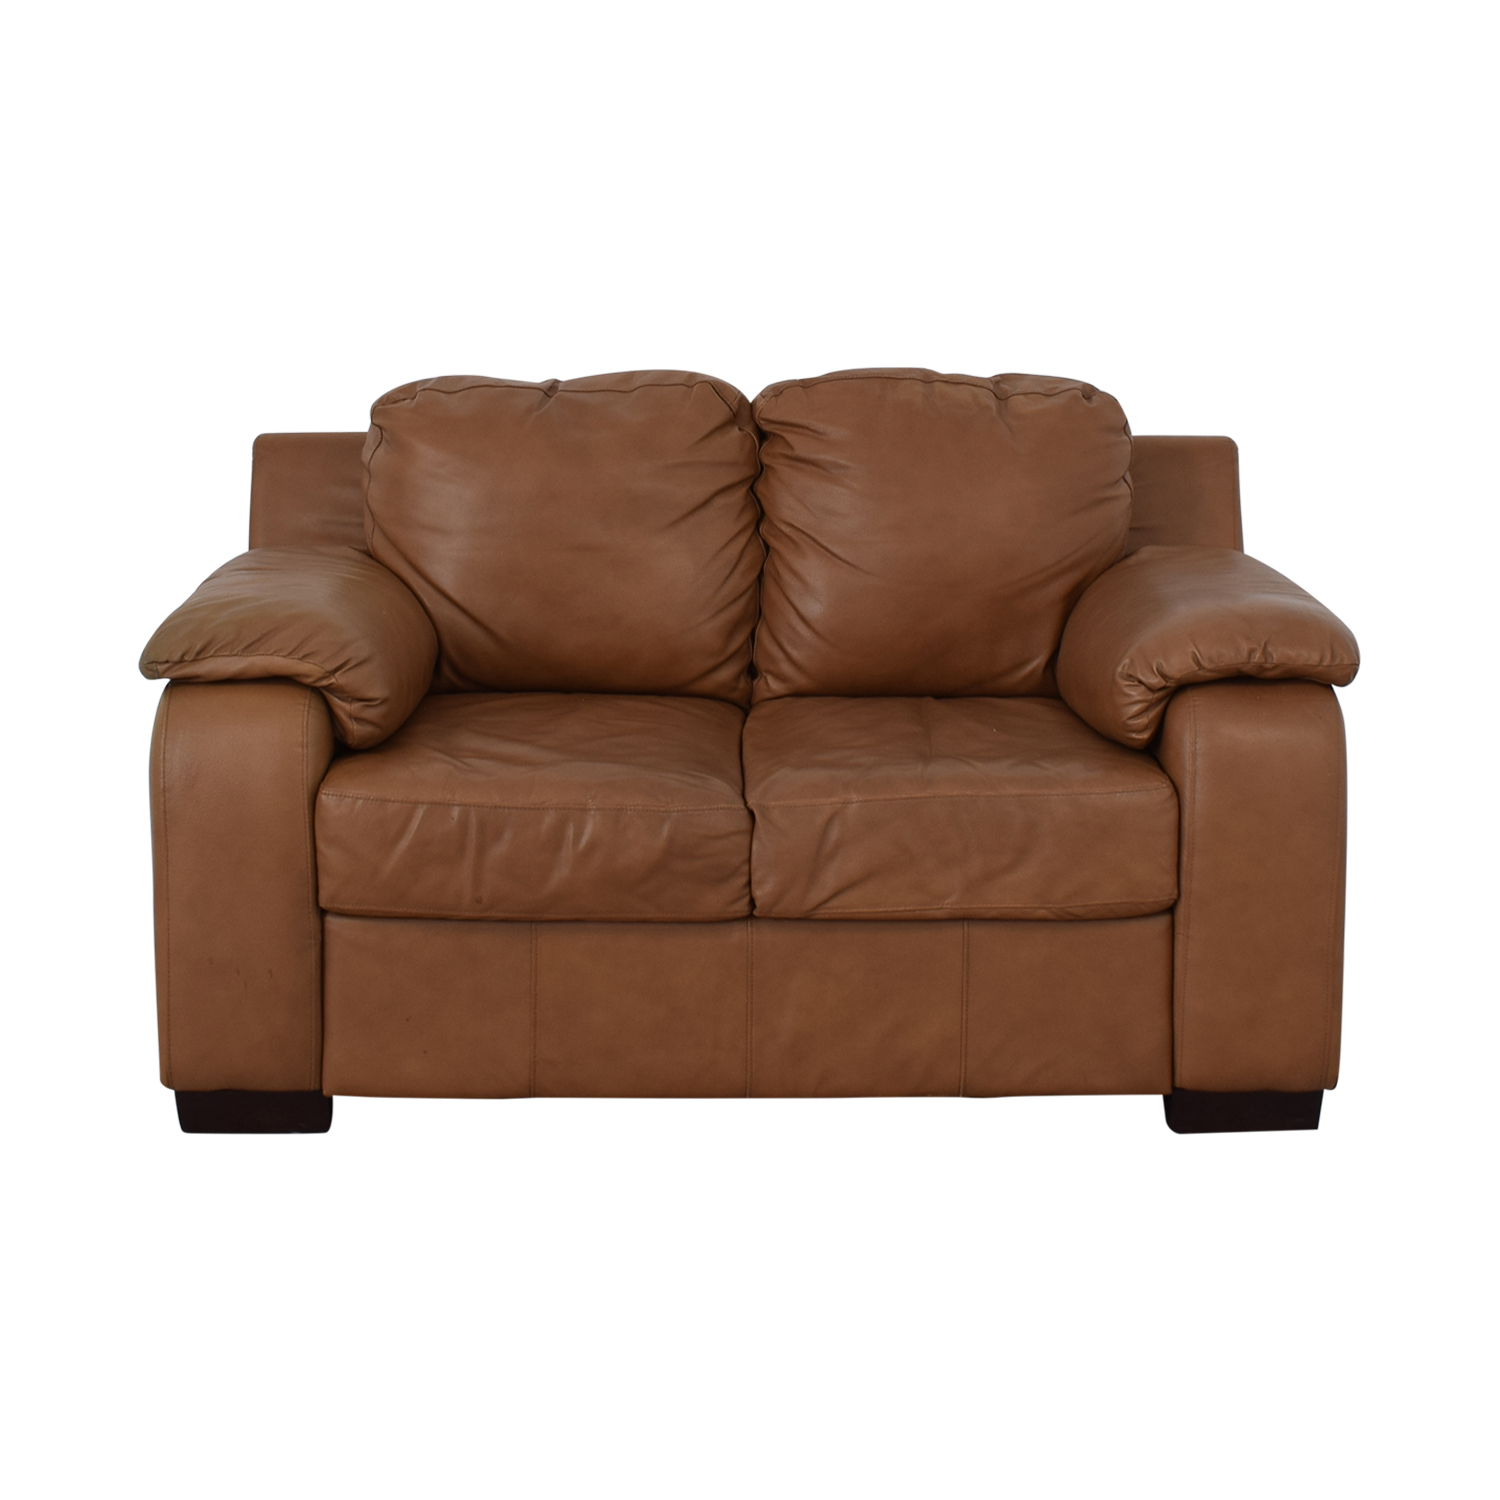 Jennifer Furniture Jennifer Furniture Cognac Two-Cushion Loveseat